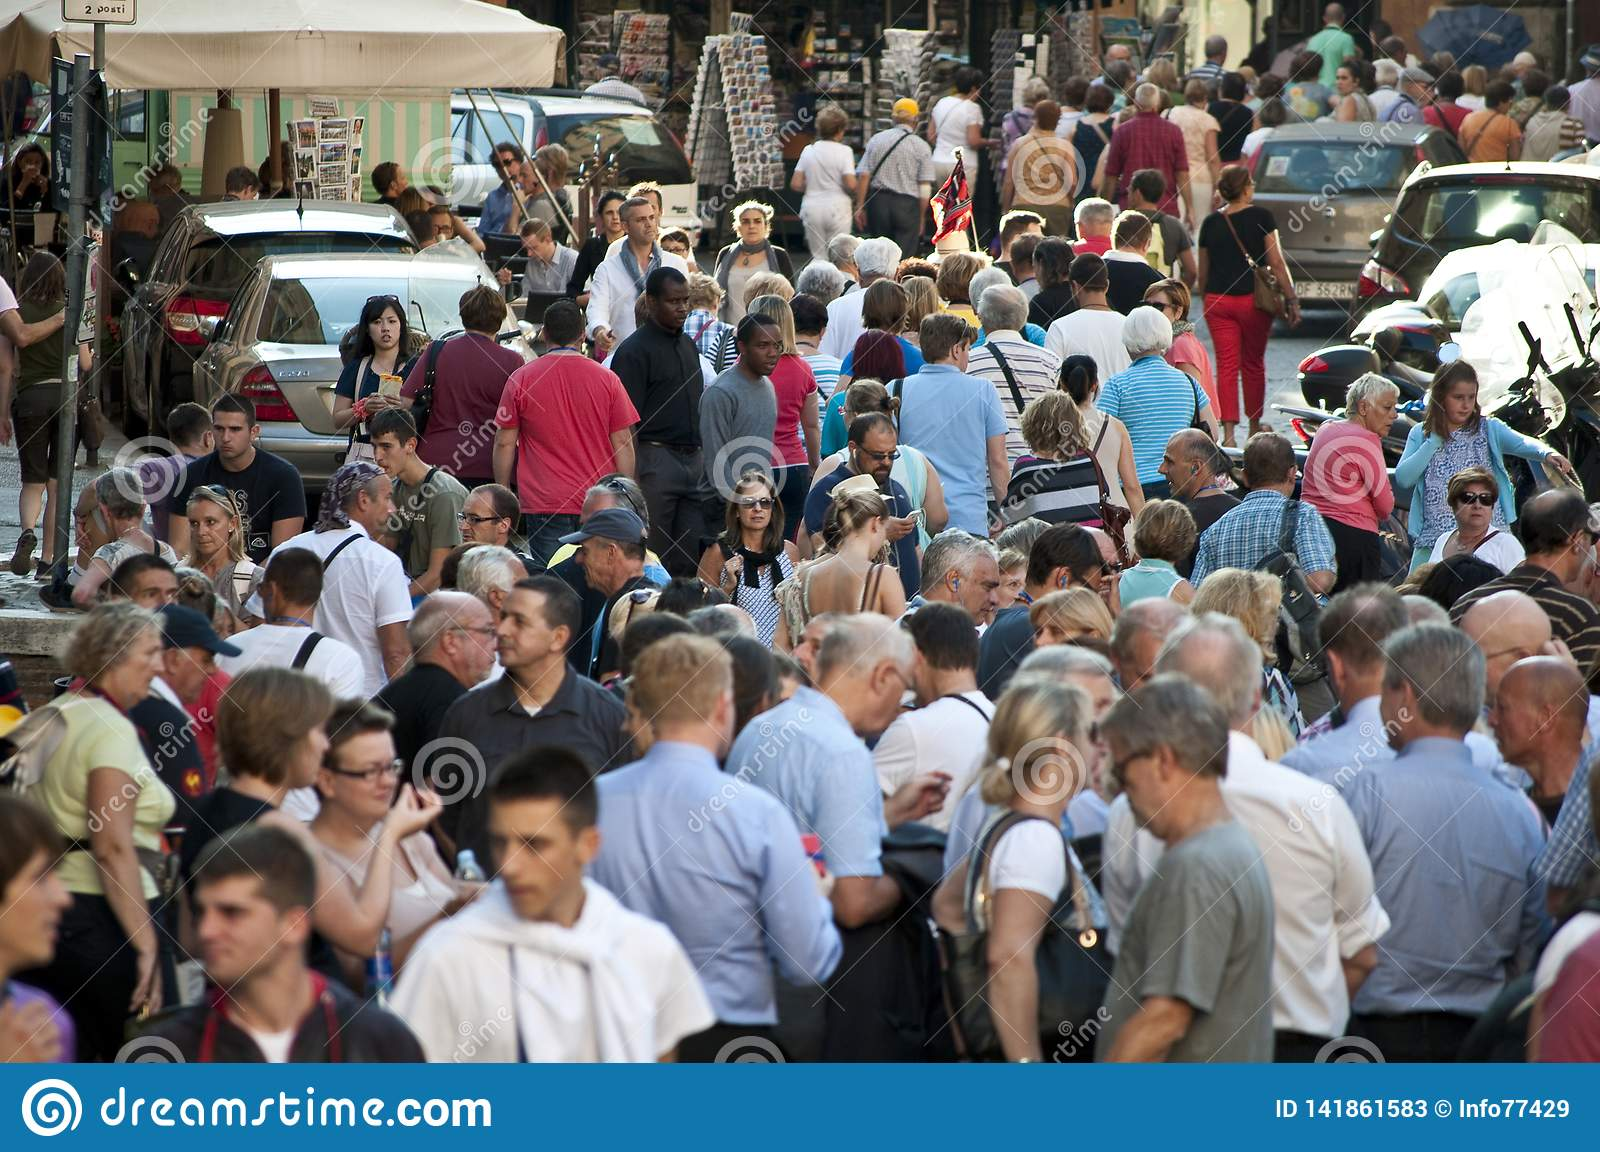 Crowds of tourists, Rome, Italy